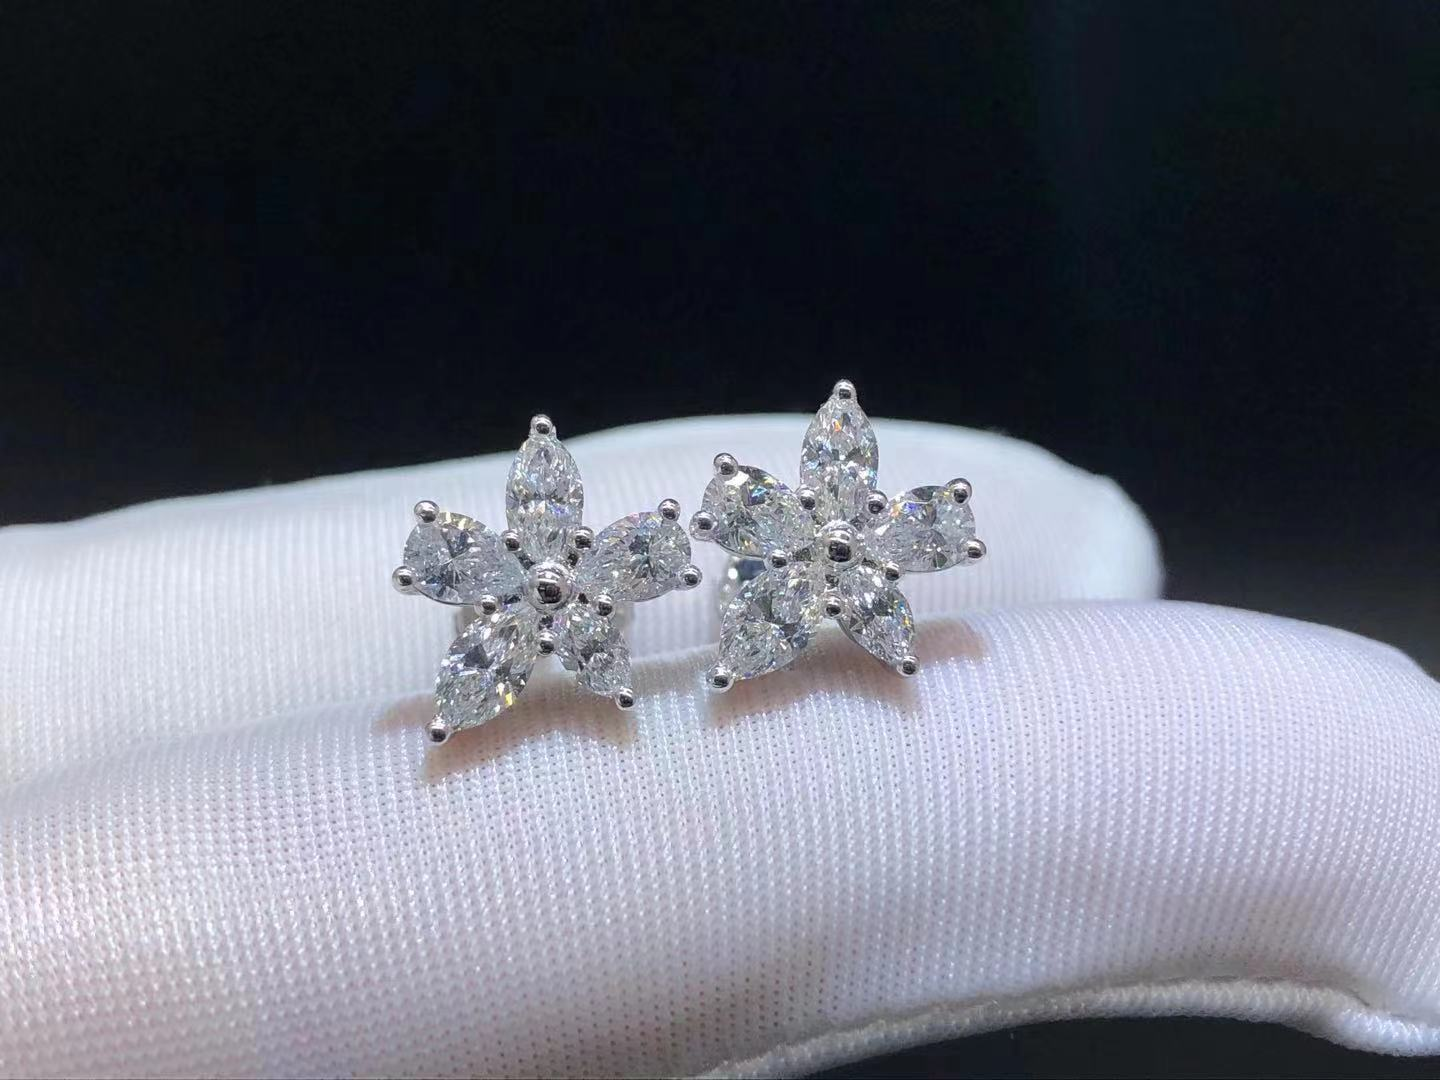 Tiffany & Co Platinum Victoria Mixed Cluster Large Model Earrings